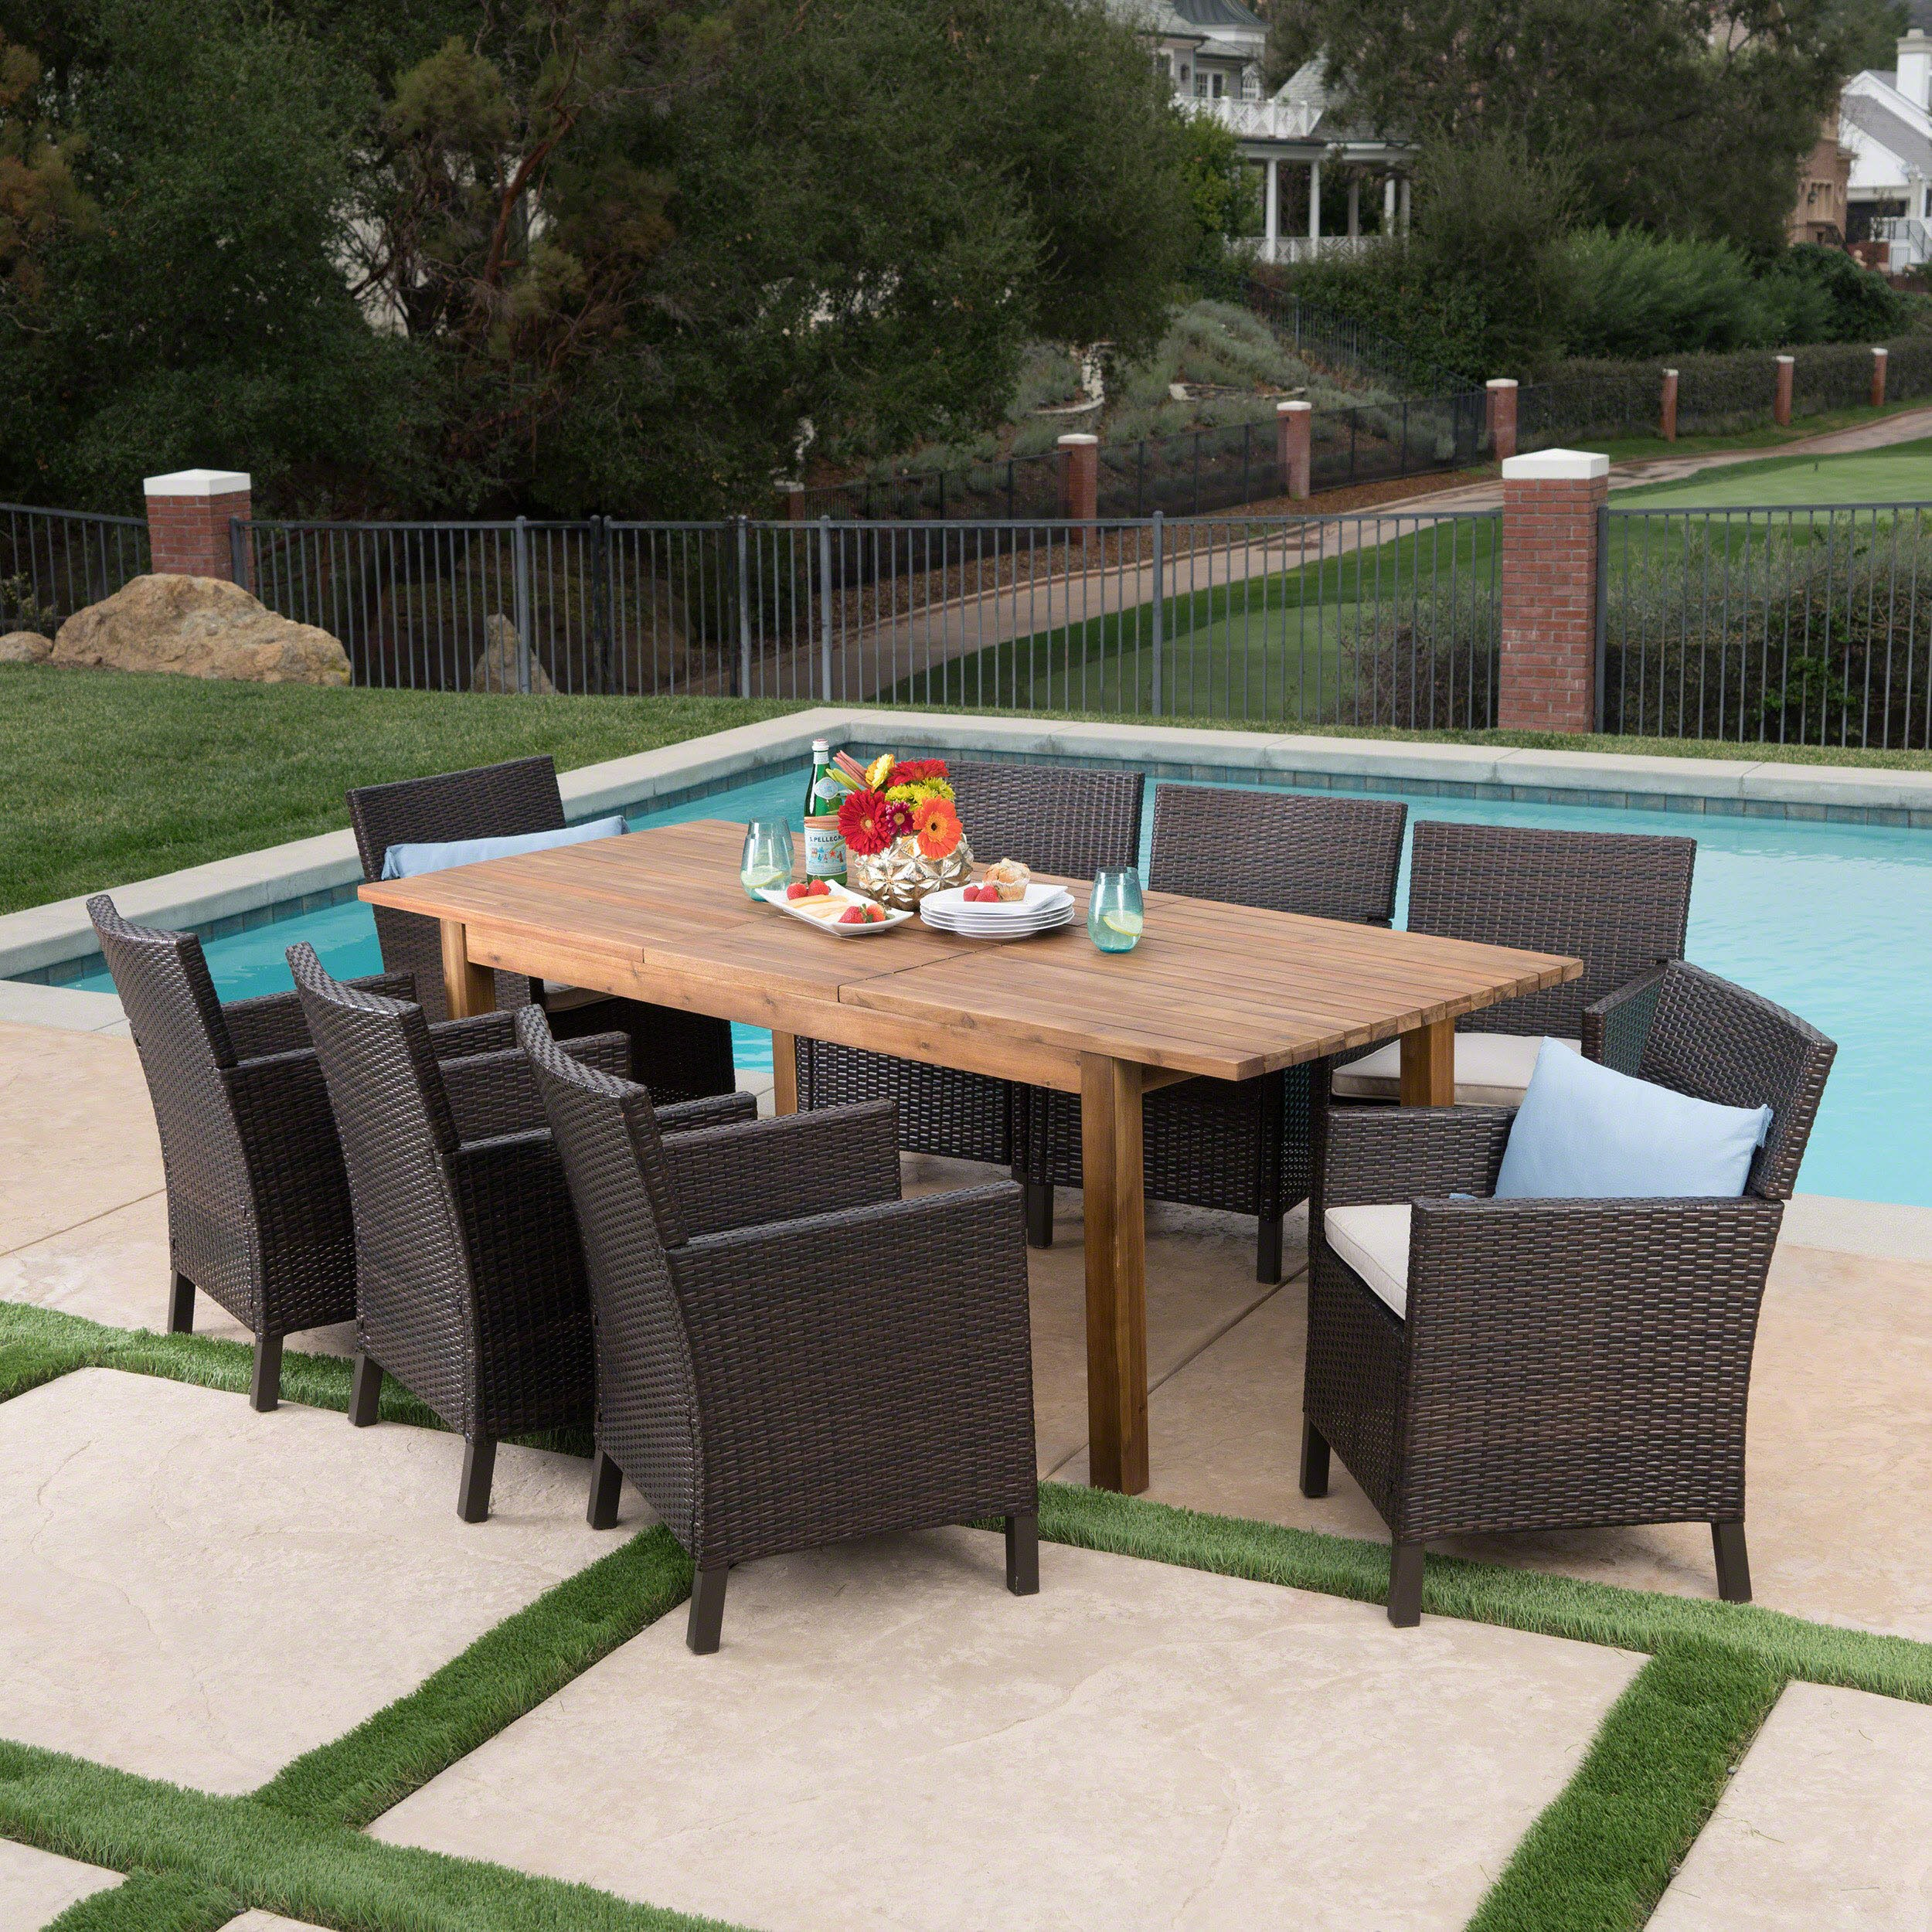 Lilith Outdoor 9 Piece Multibrown Wicker Dining Set with Teak Finished Acacia Wood Expandable Dining Table and Light Brown Water Resistant Cushions by Great Deal Furniture